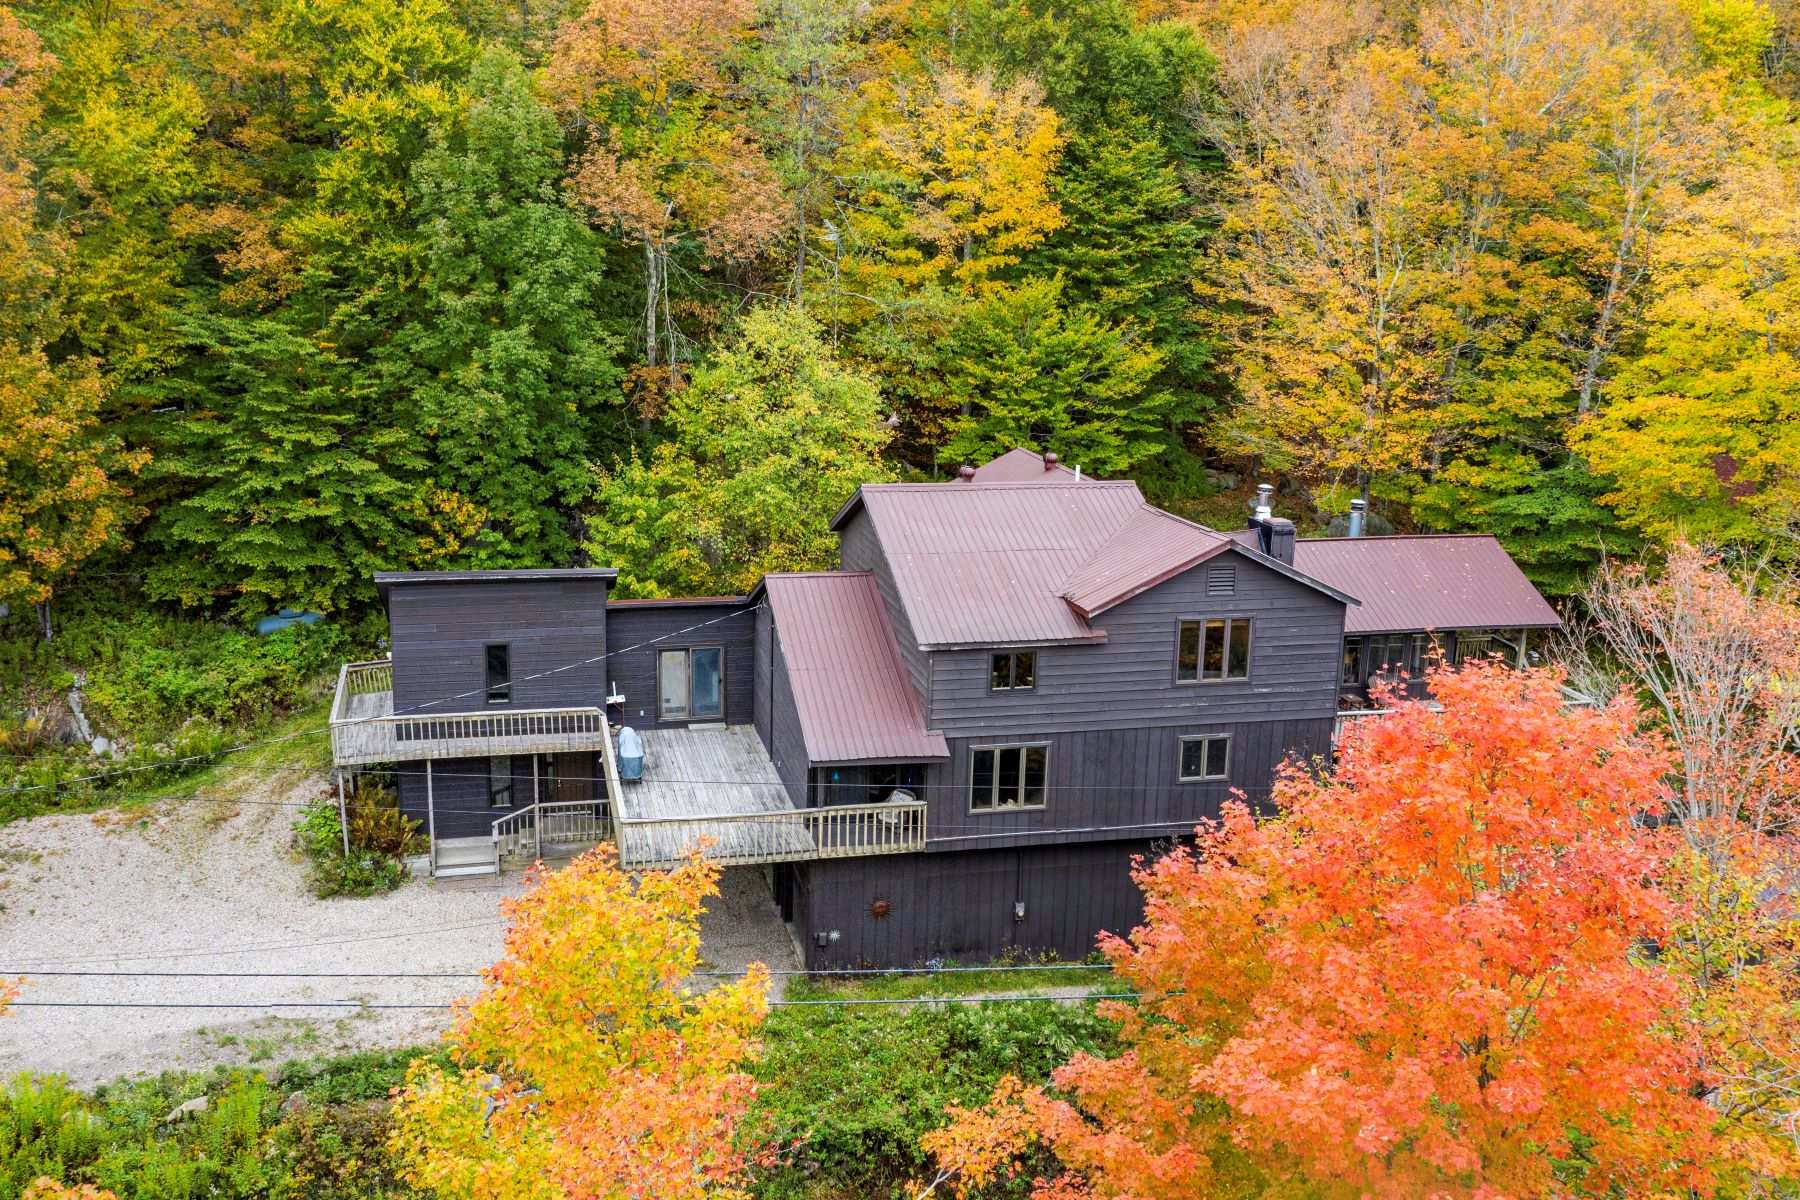 Single Family Homes für Verkauf beim Hollywood Hills Duplex 367 Hollywood Road, Old Forge, New York 13420 Vereinigte Staaten